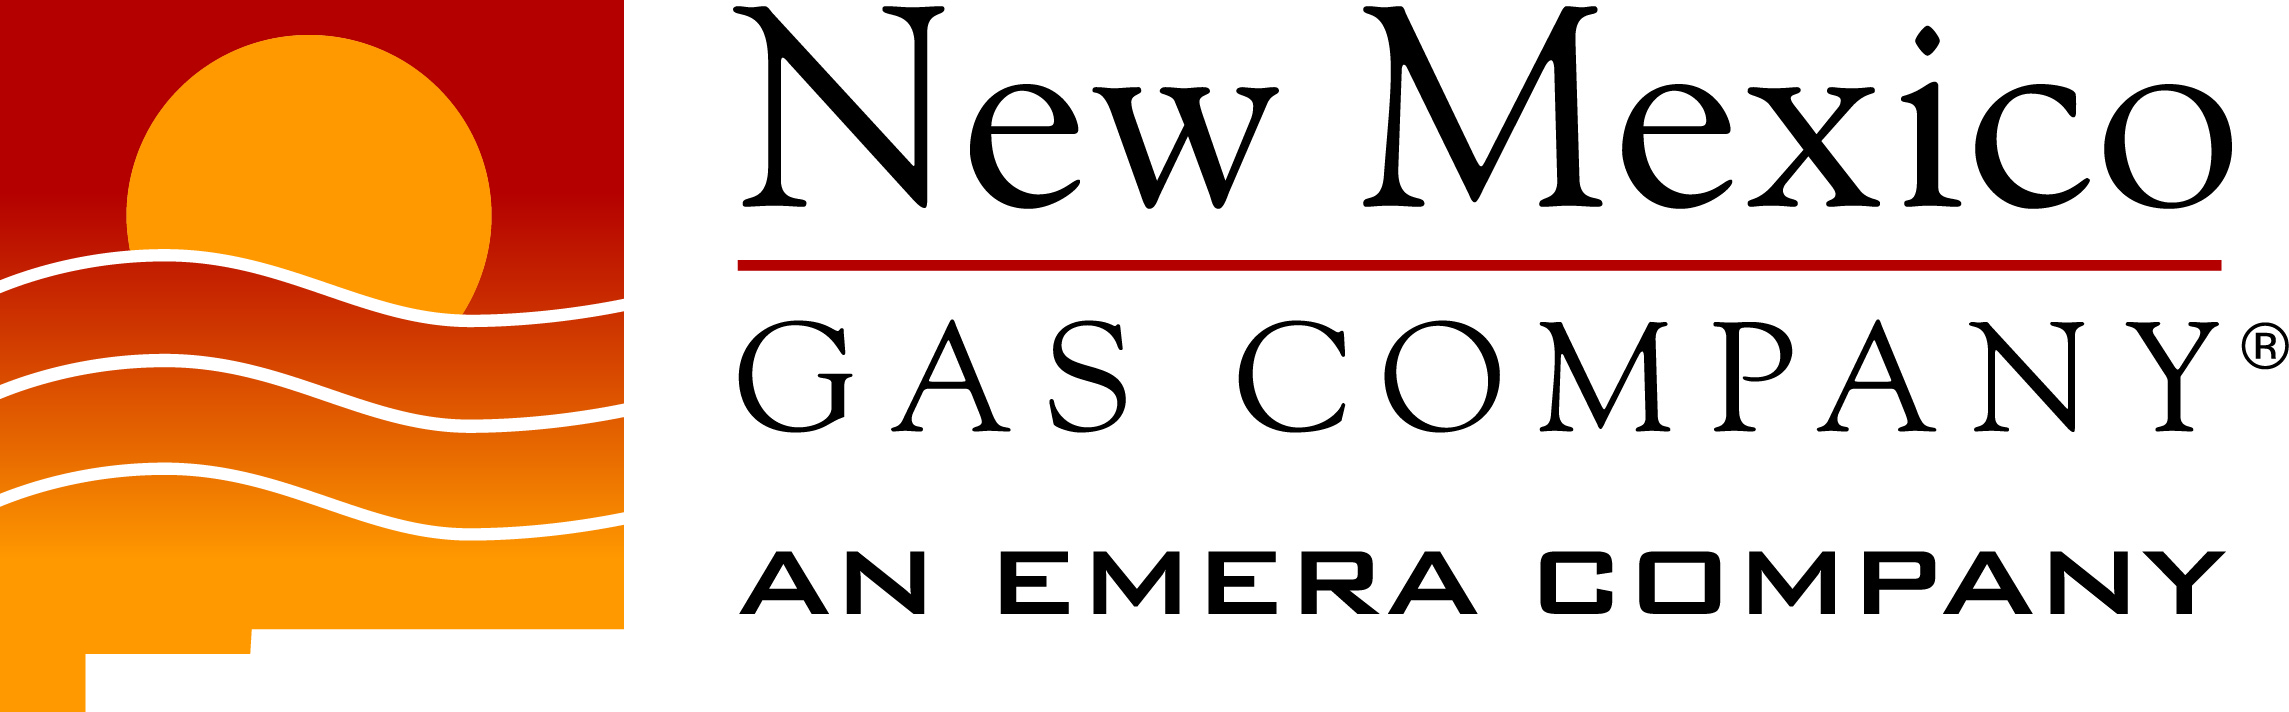 New Mexico Gas Company, Inc.